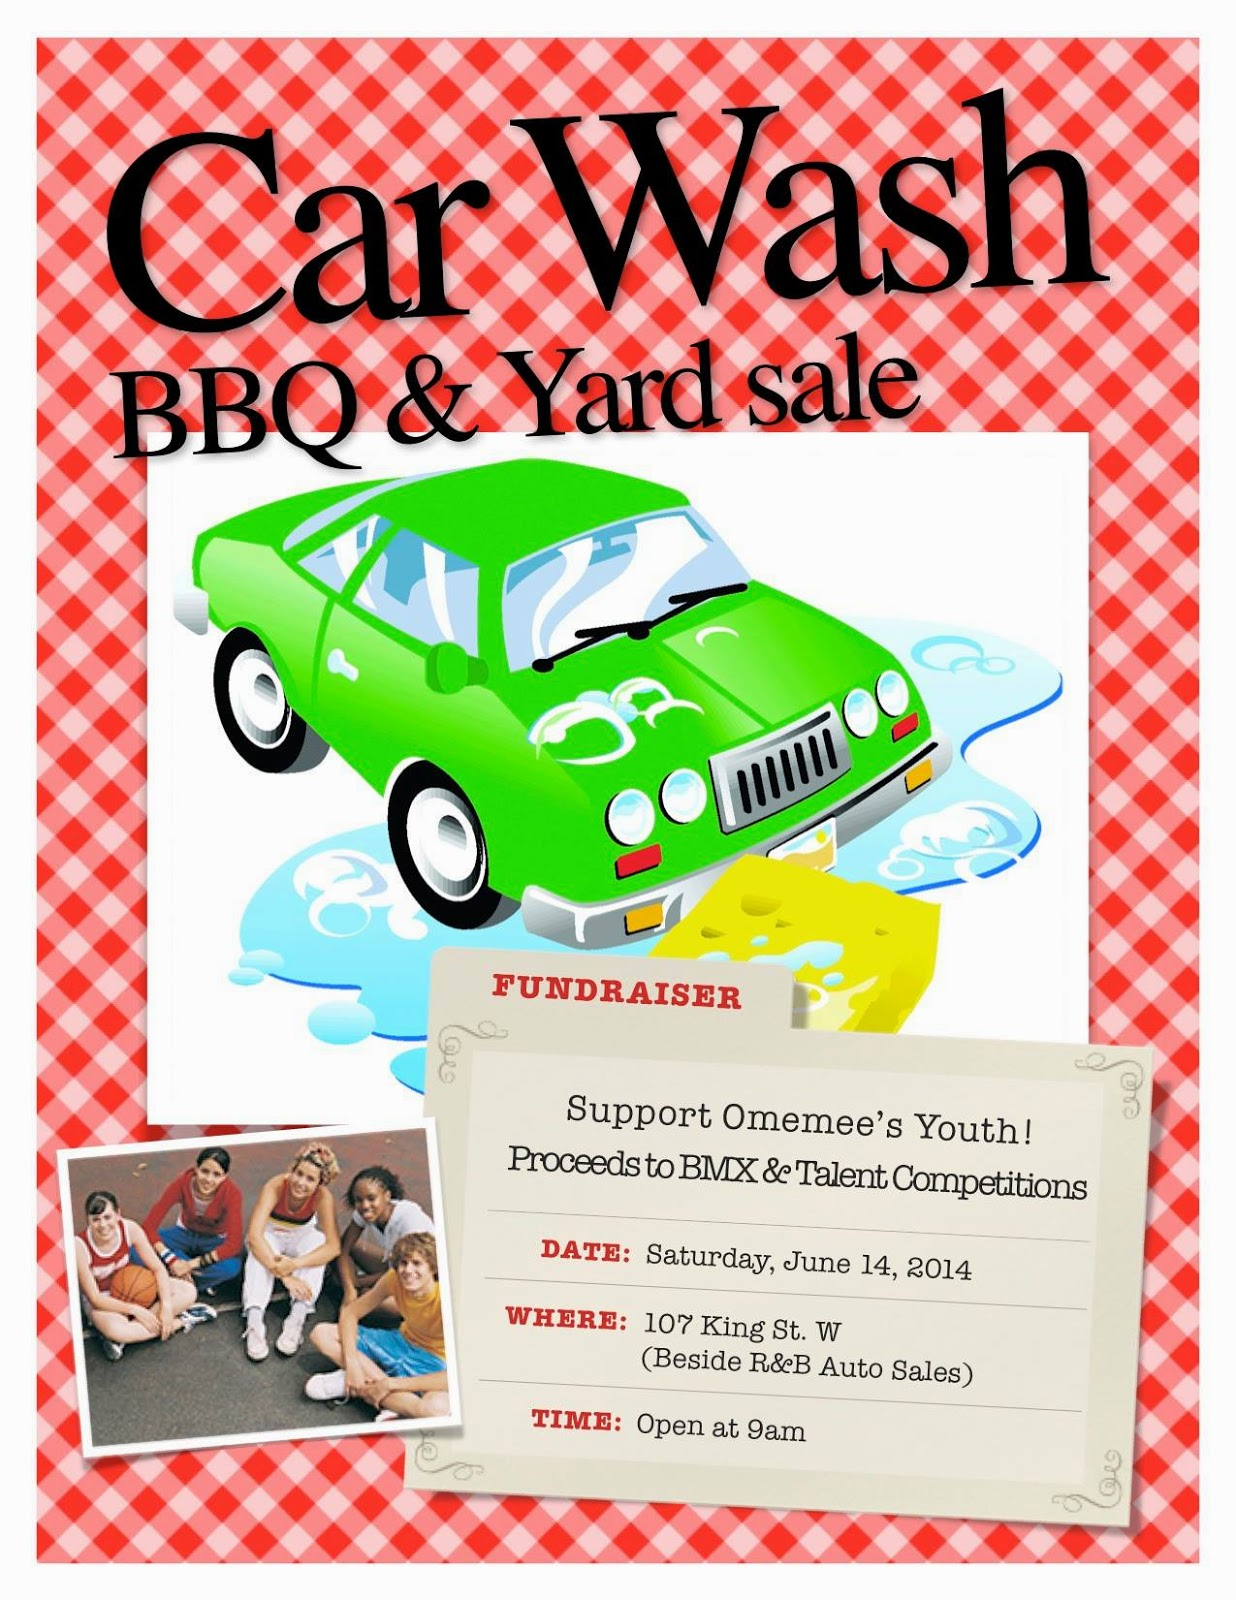 Omemee June 14 Car Wash BBQ and Yard Sale